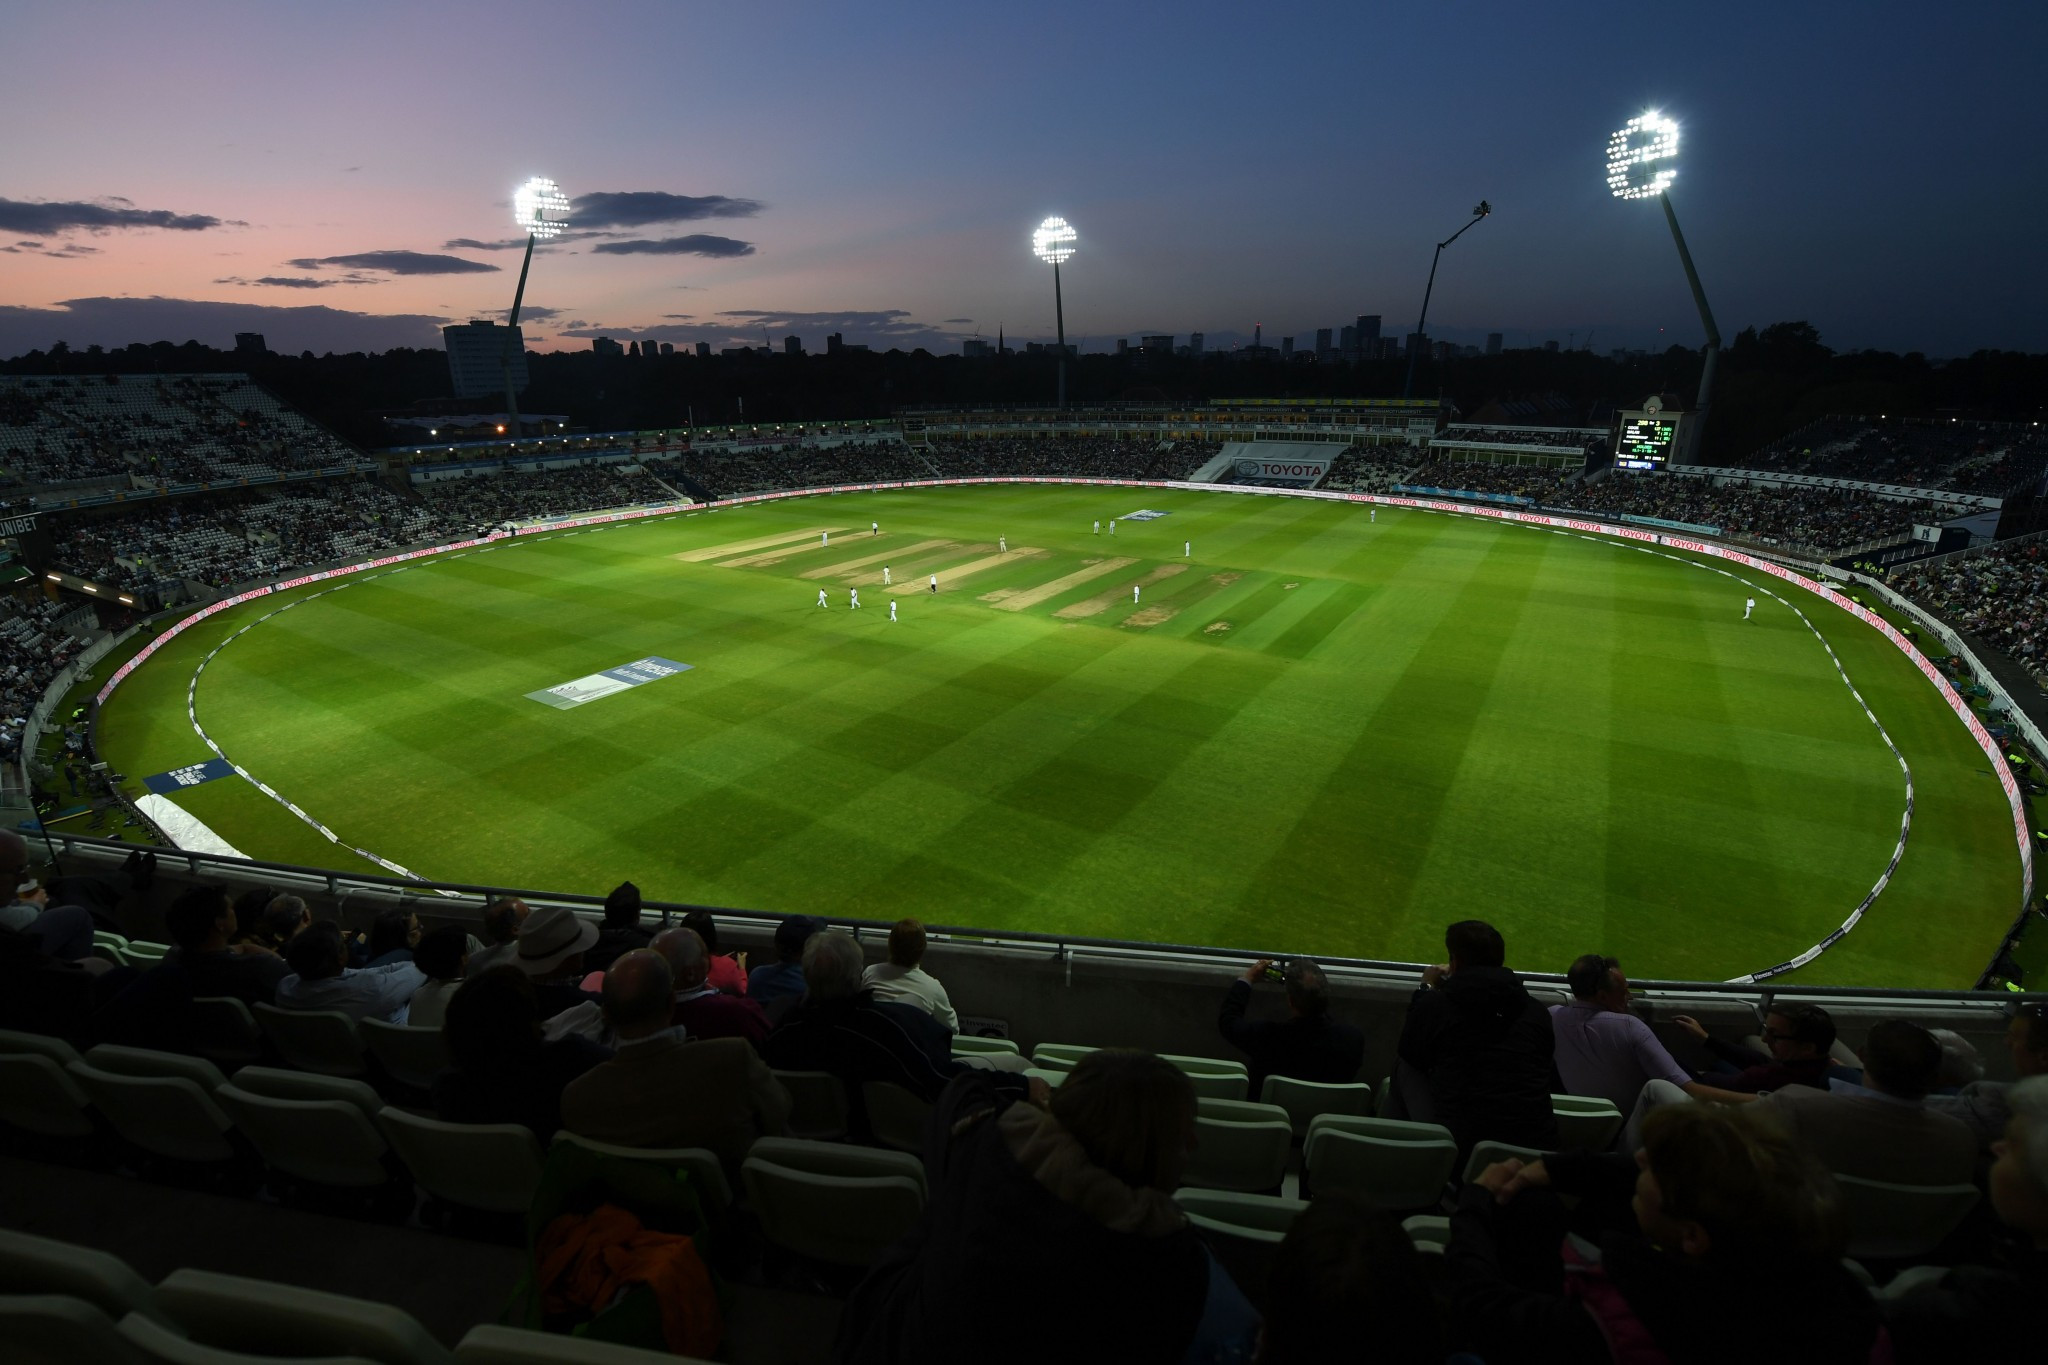 New Zealand's day-night Test match at Eden Park in Auckland will be the first-ever in New Zealand ©Getty Images